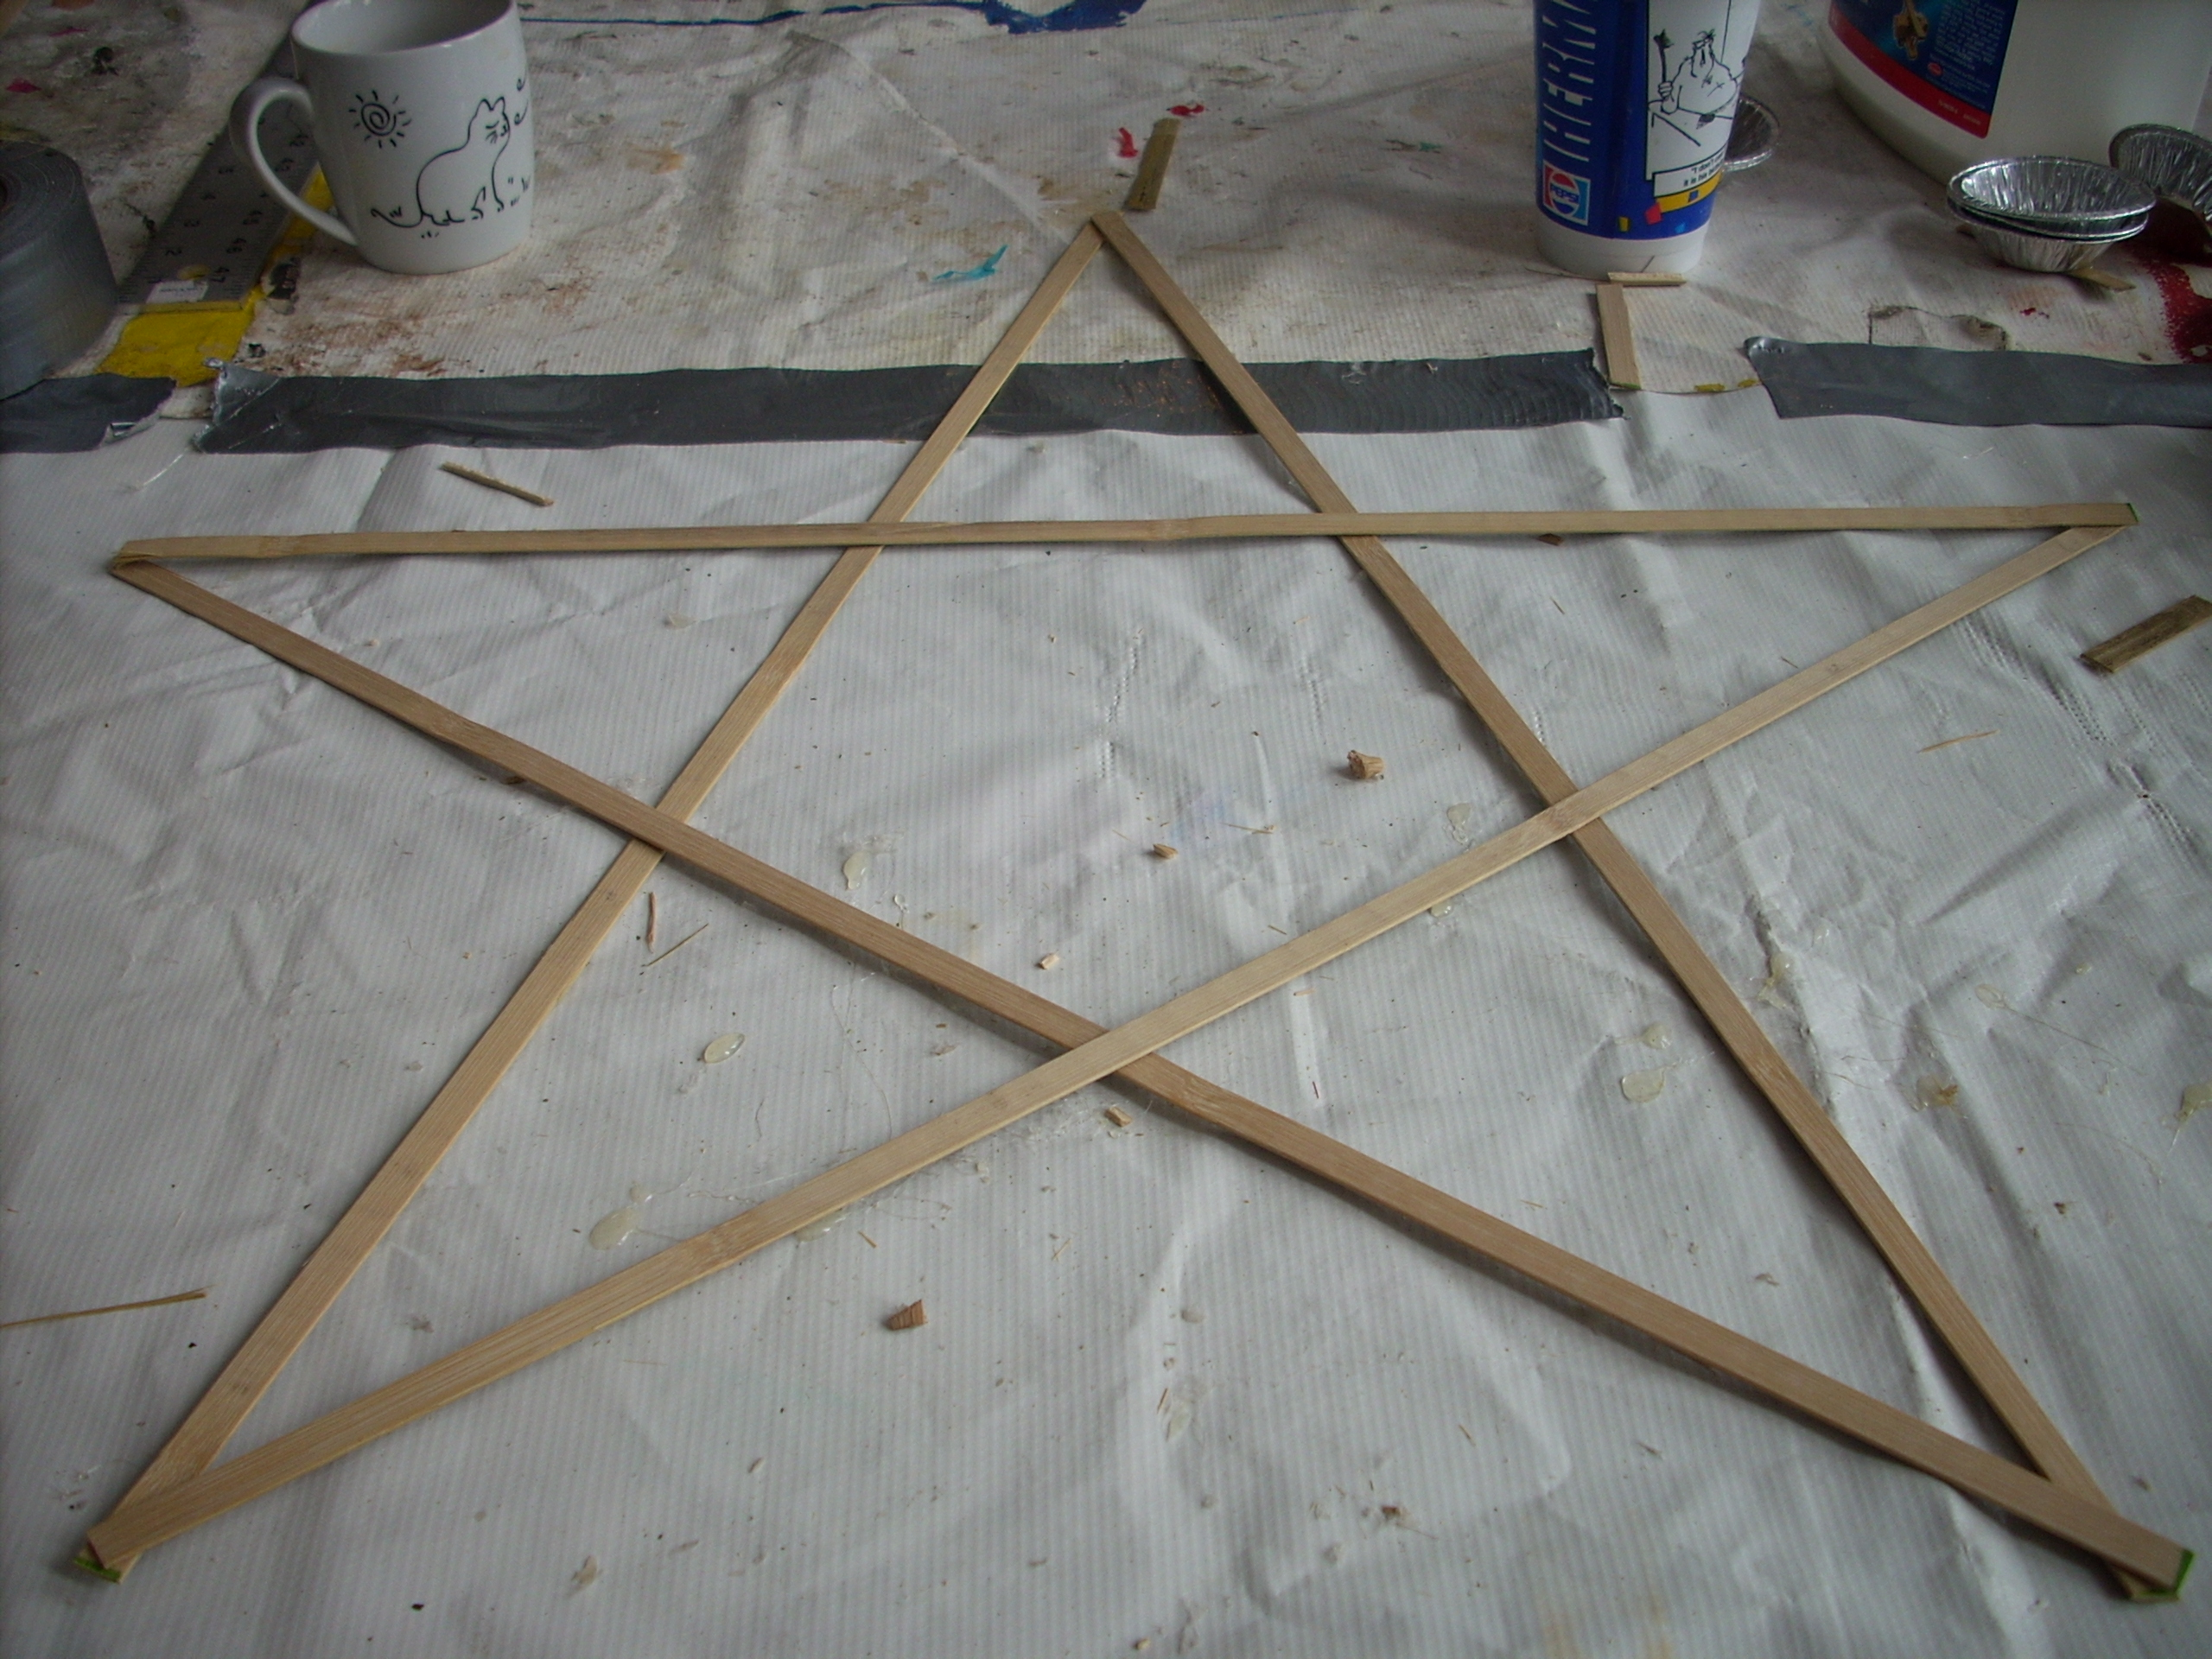 Picture of Arranging the Pieces Into a Star